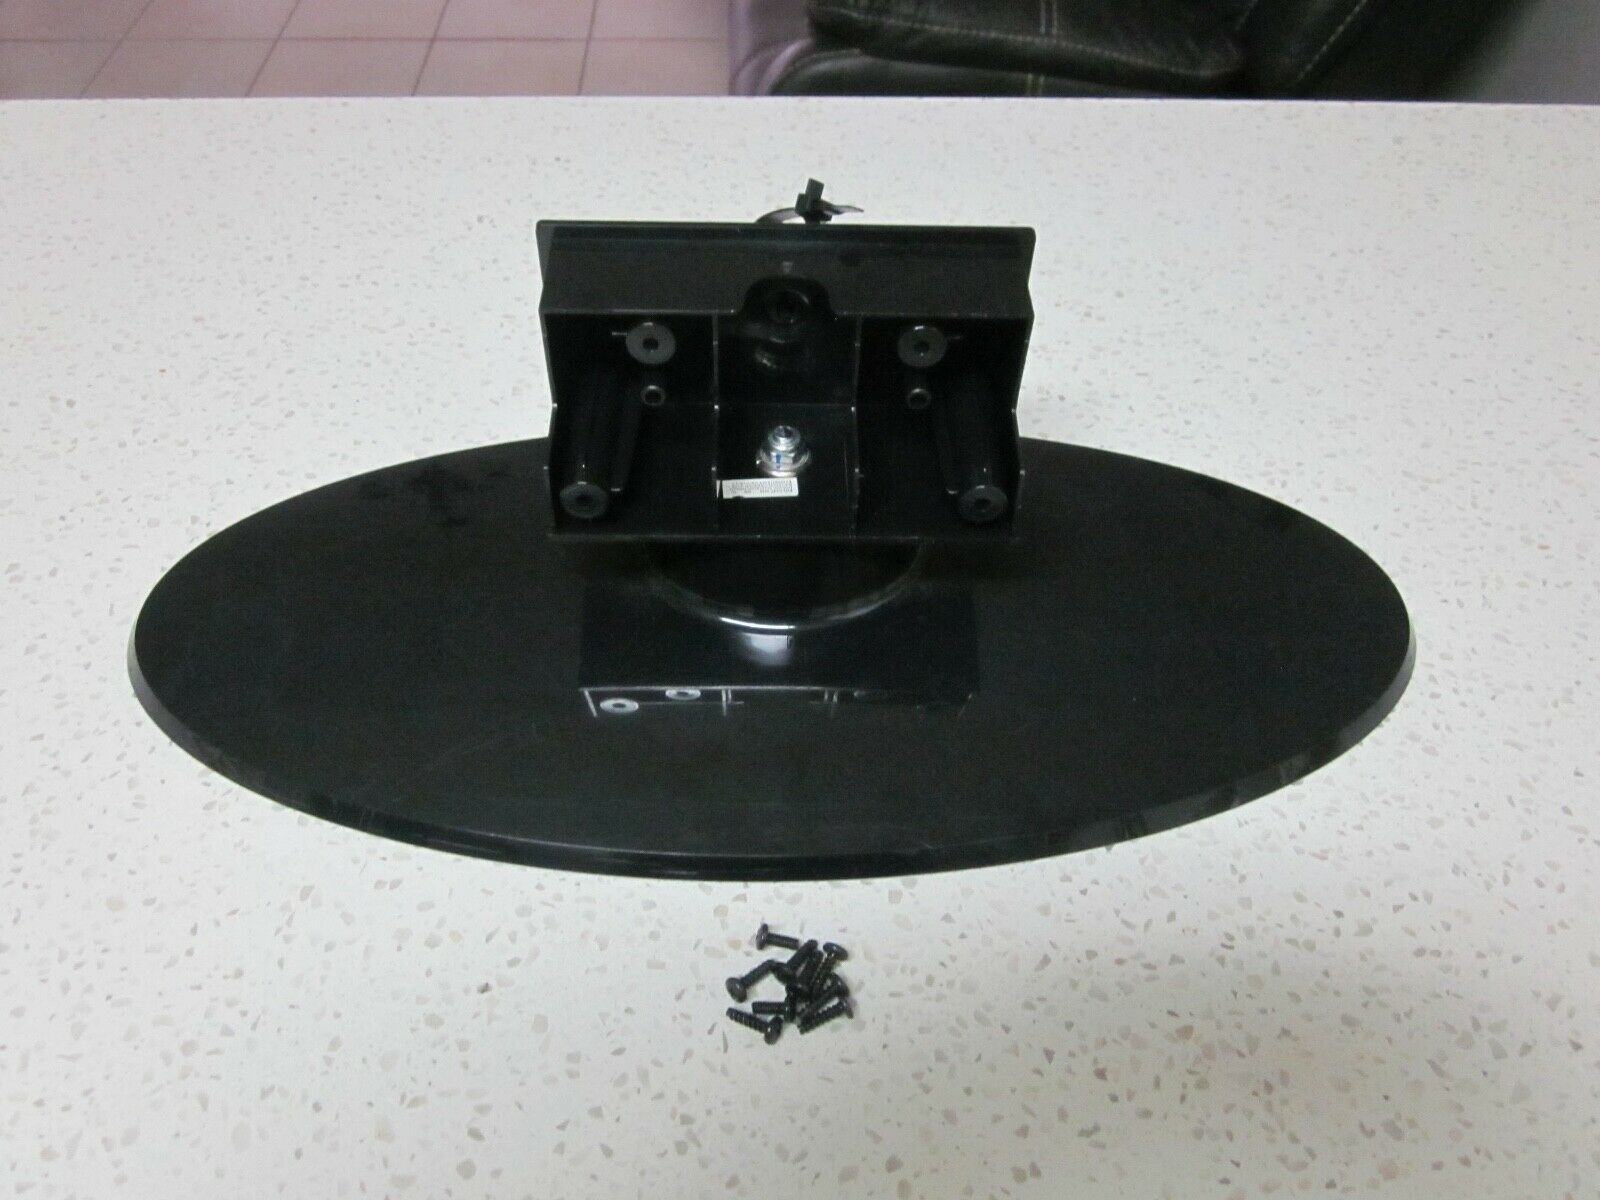 INSIGNIA TV NS-LCD32-09 SWIVEL PEDESTAL STAND COMPLETE WITH SCREWS .